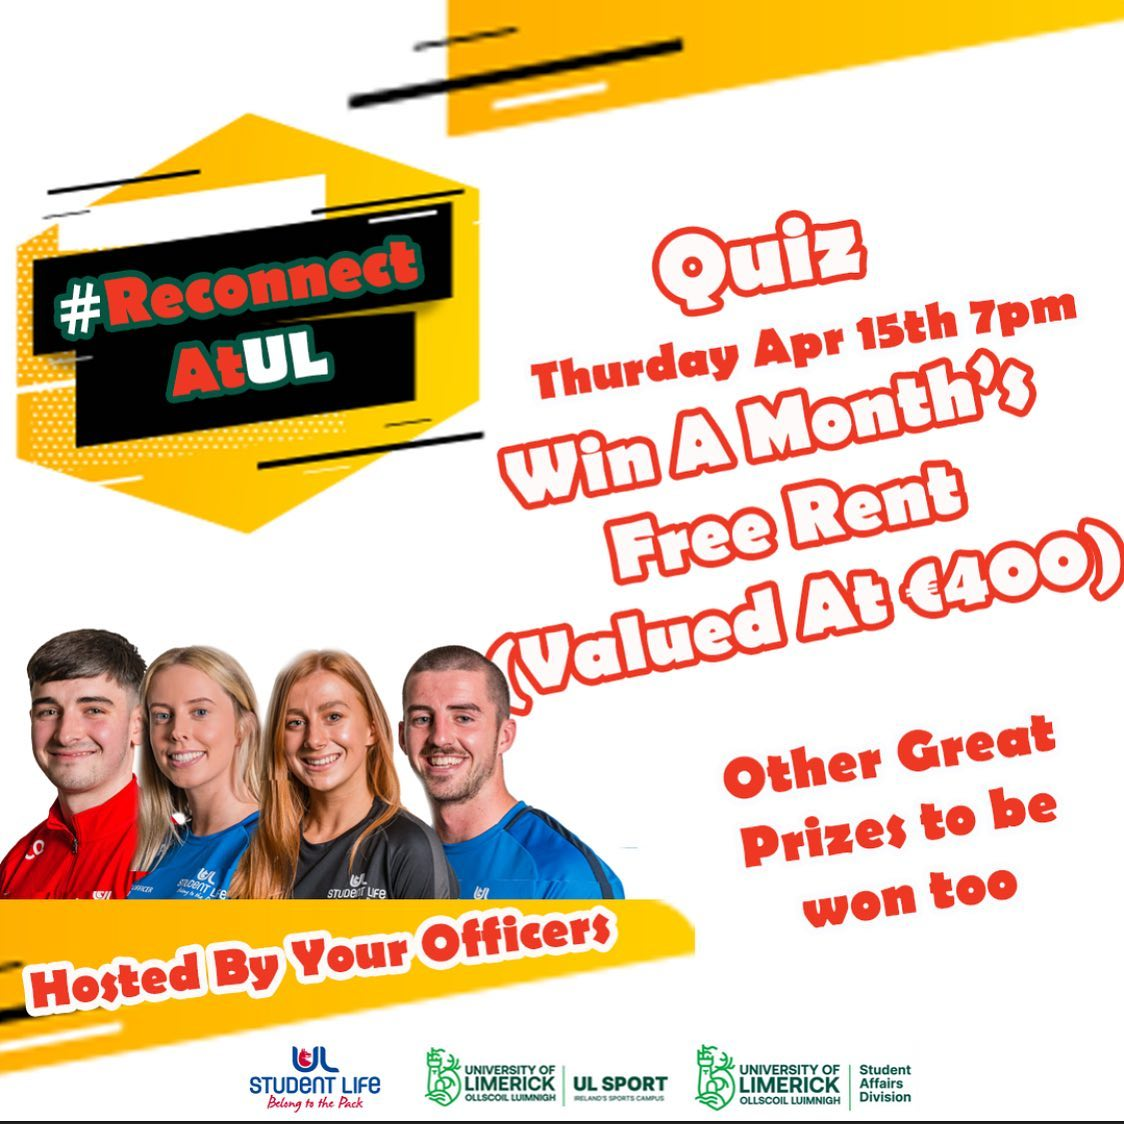 UL Student Life Officers hosted a table quiz with the theme being #ReconnectAtUL